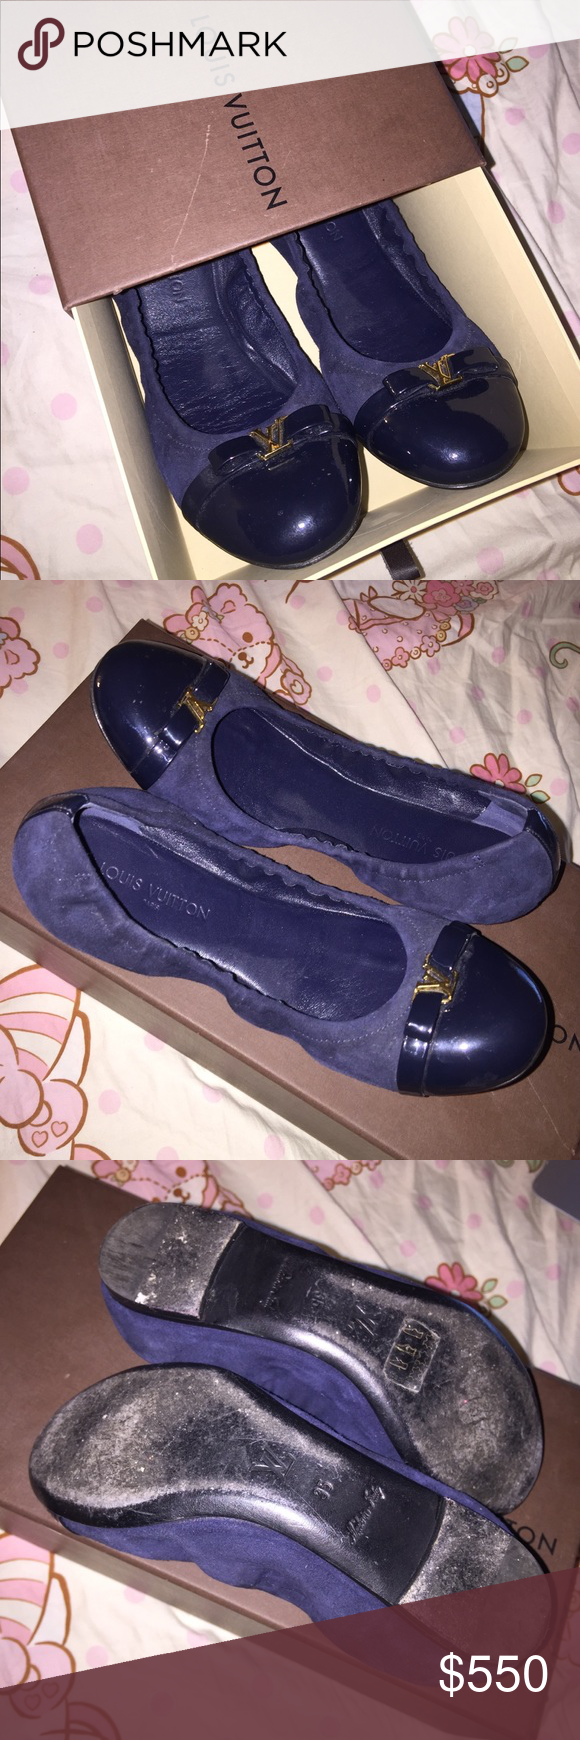 b99730af6d74 Spotted while shopping on Poshmark  LV Navy Blue Suede Patent Elba  Ballerina Flats!  poshmark  fashion  shopping  style  Louis Vuitton  Shoes